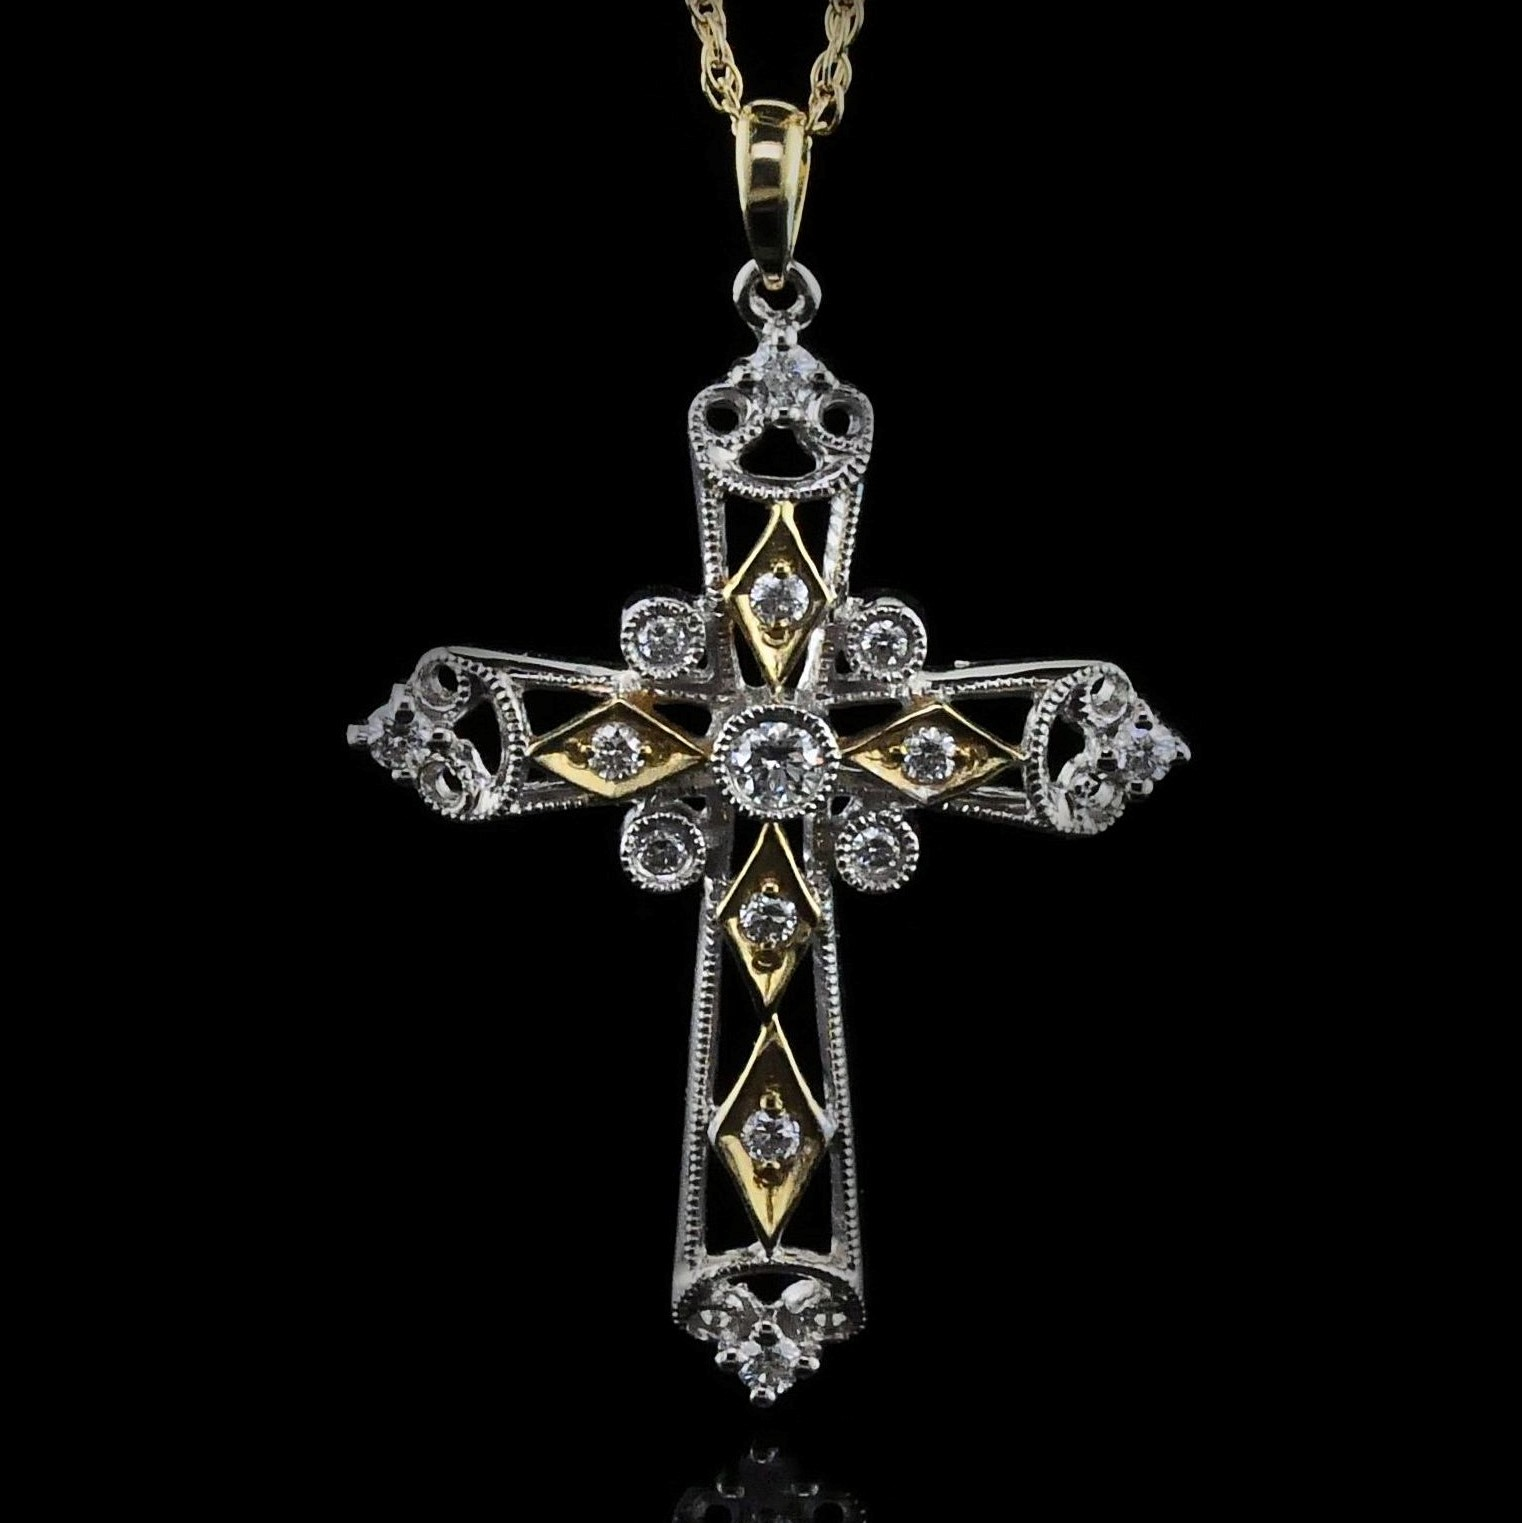 Alisa Unger Designs Diamond Cross Pendant by Alisa Unger